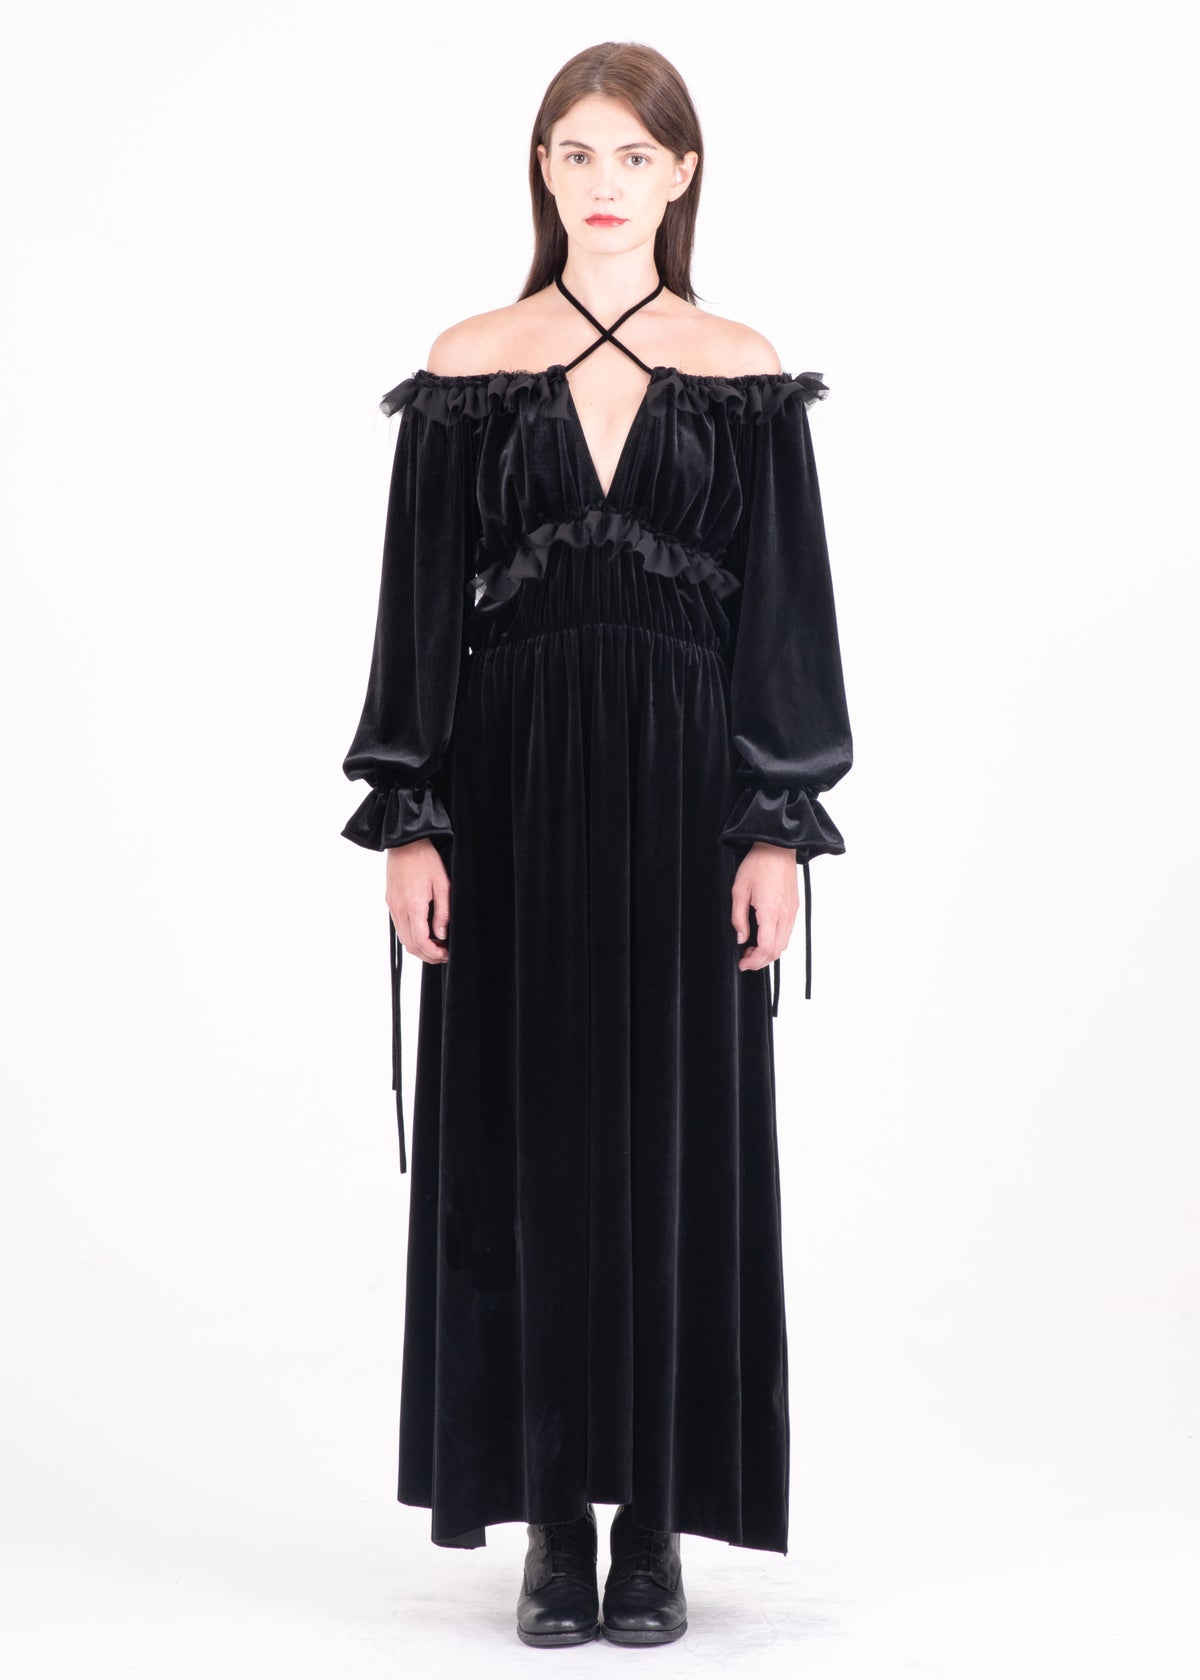 Image of Mona Lace Up Long Dress in Black Velvet